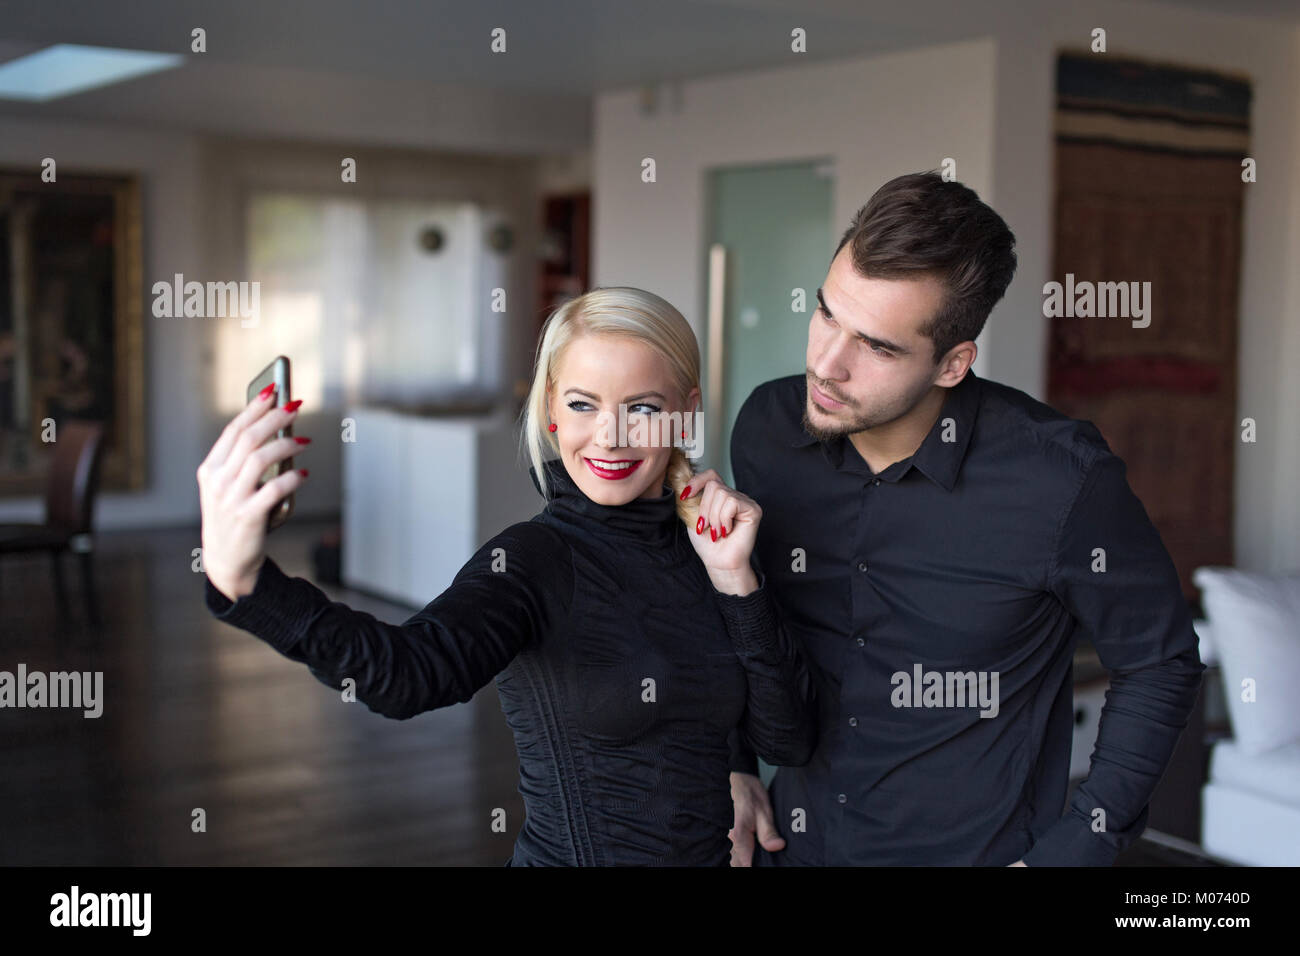 Happy young stylish couple in black outfit taking selfie indoor - Stock Image